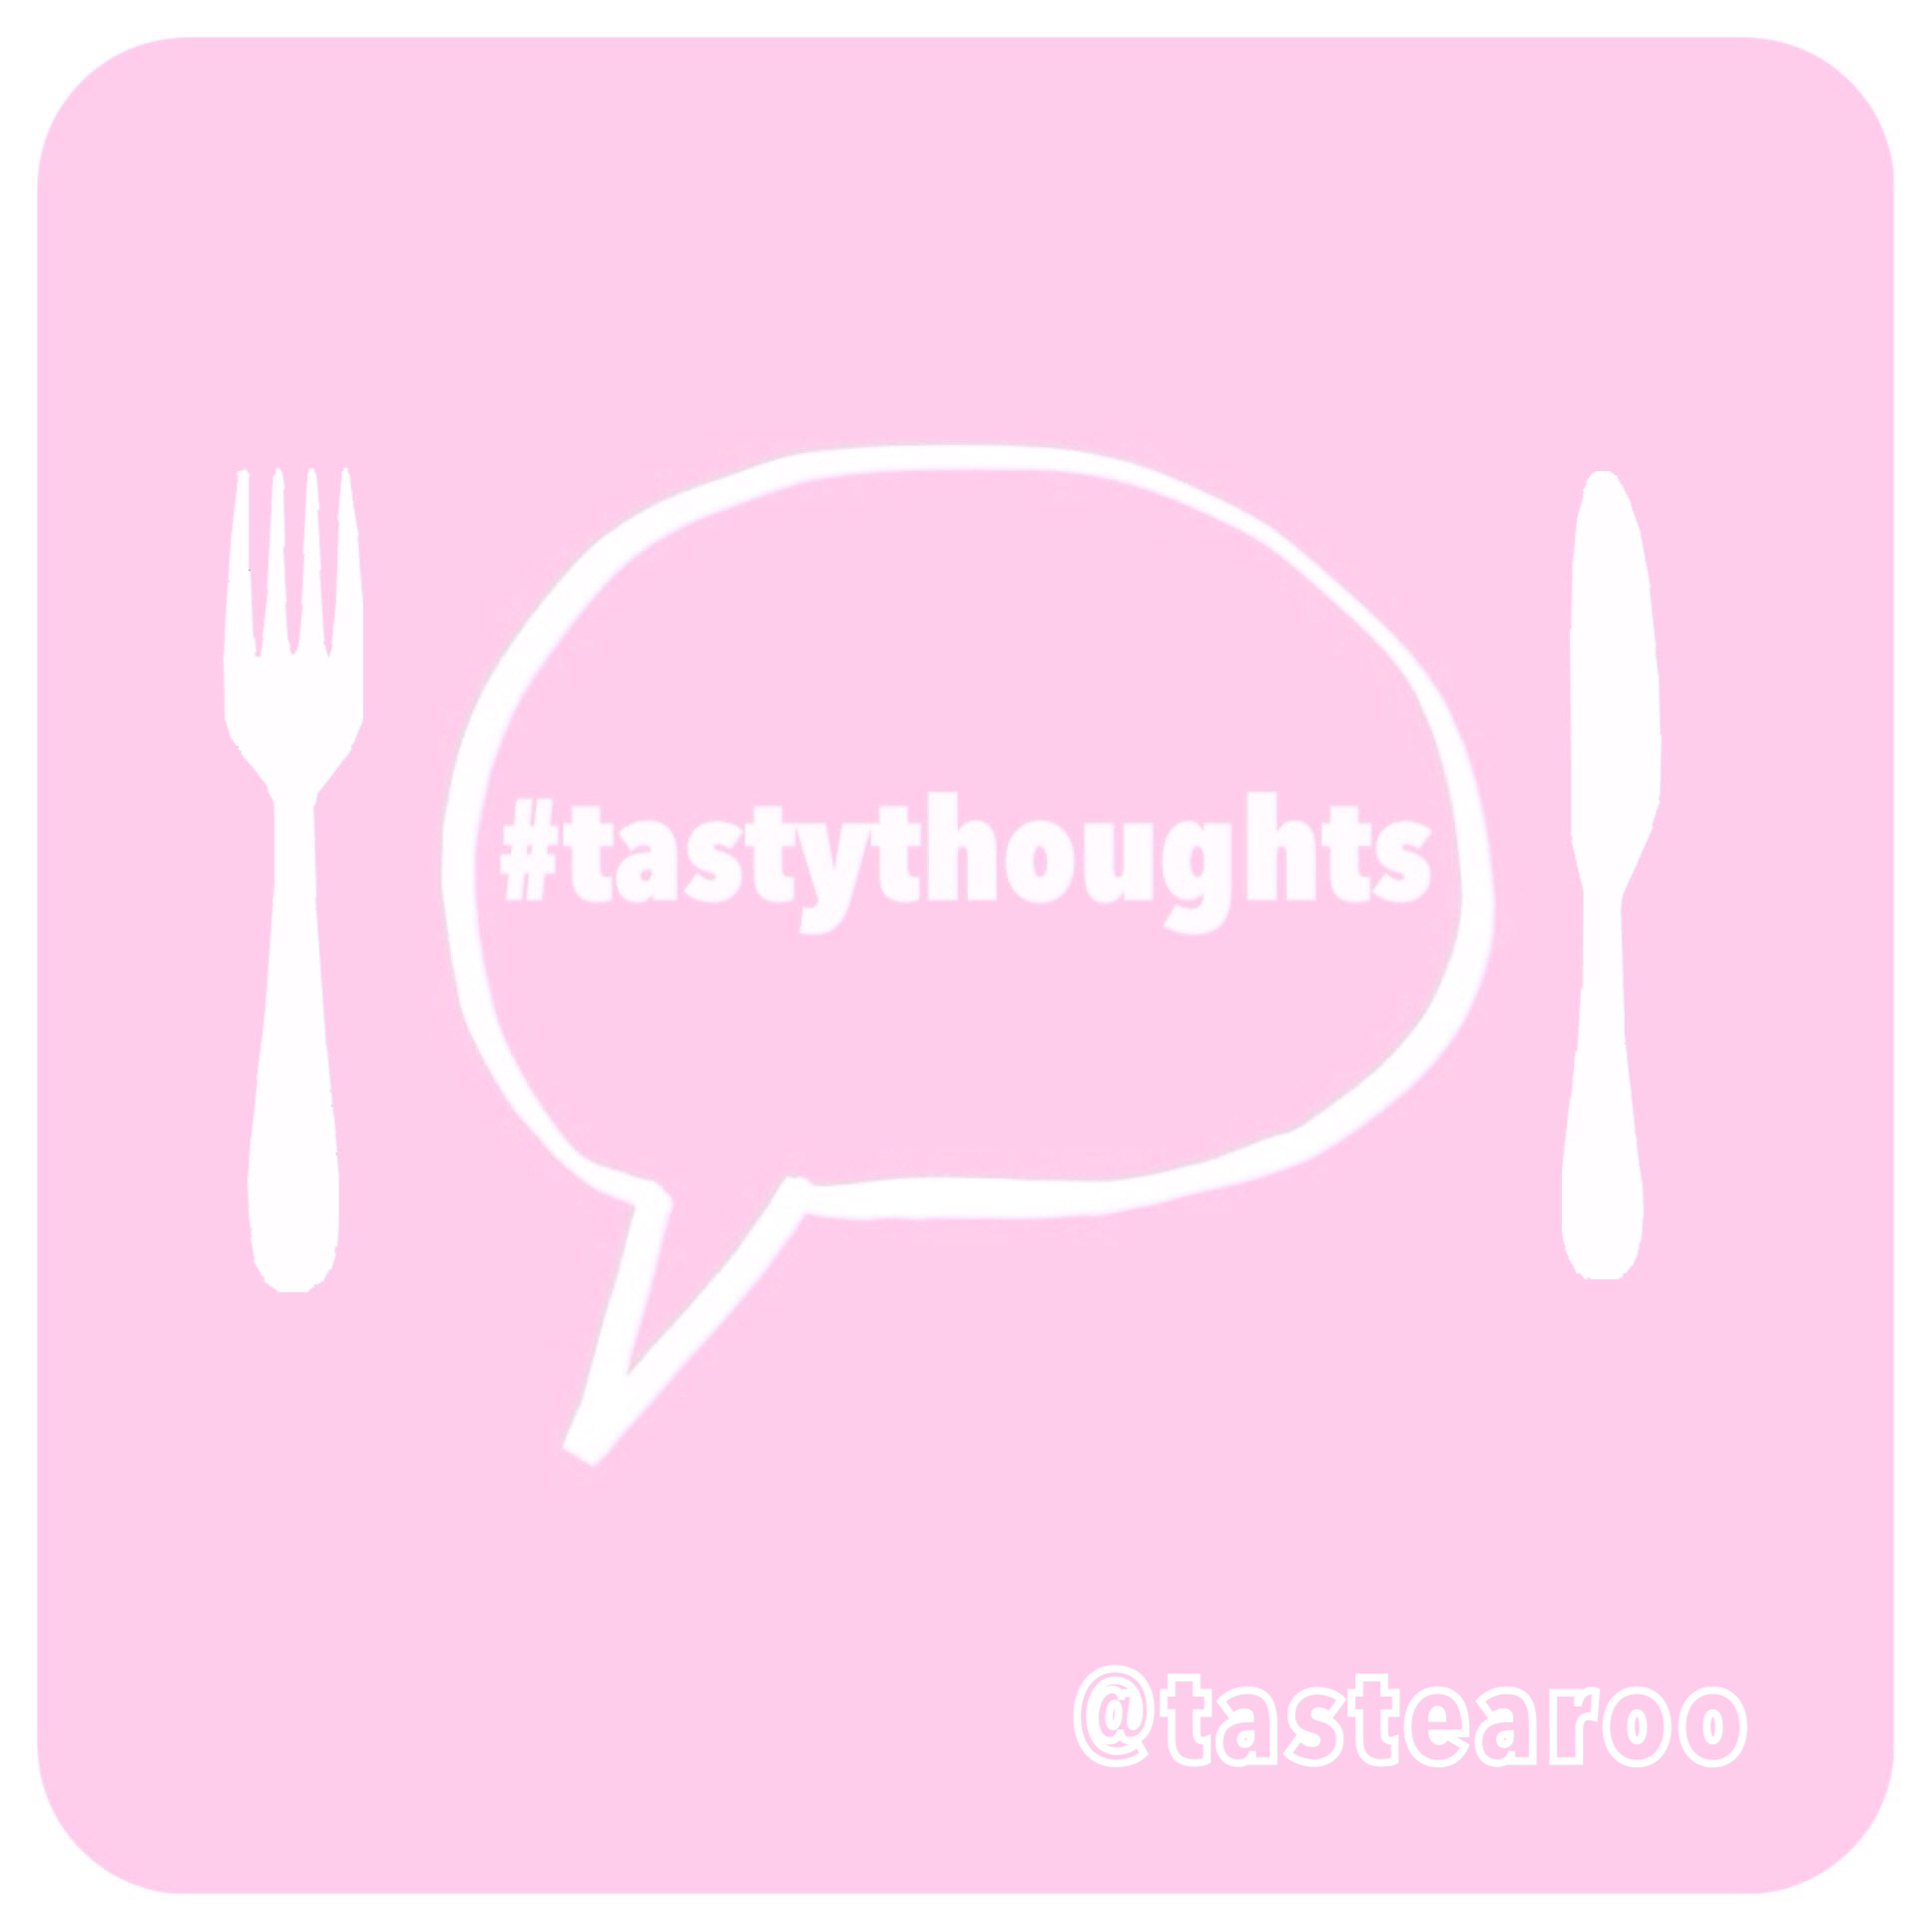 #tastythoughts